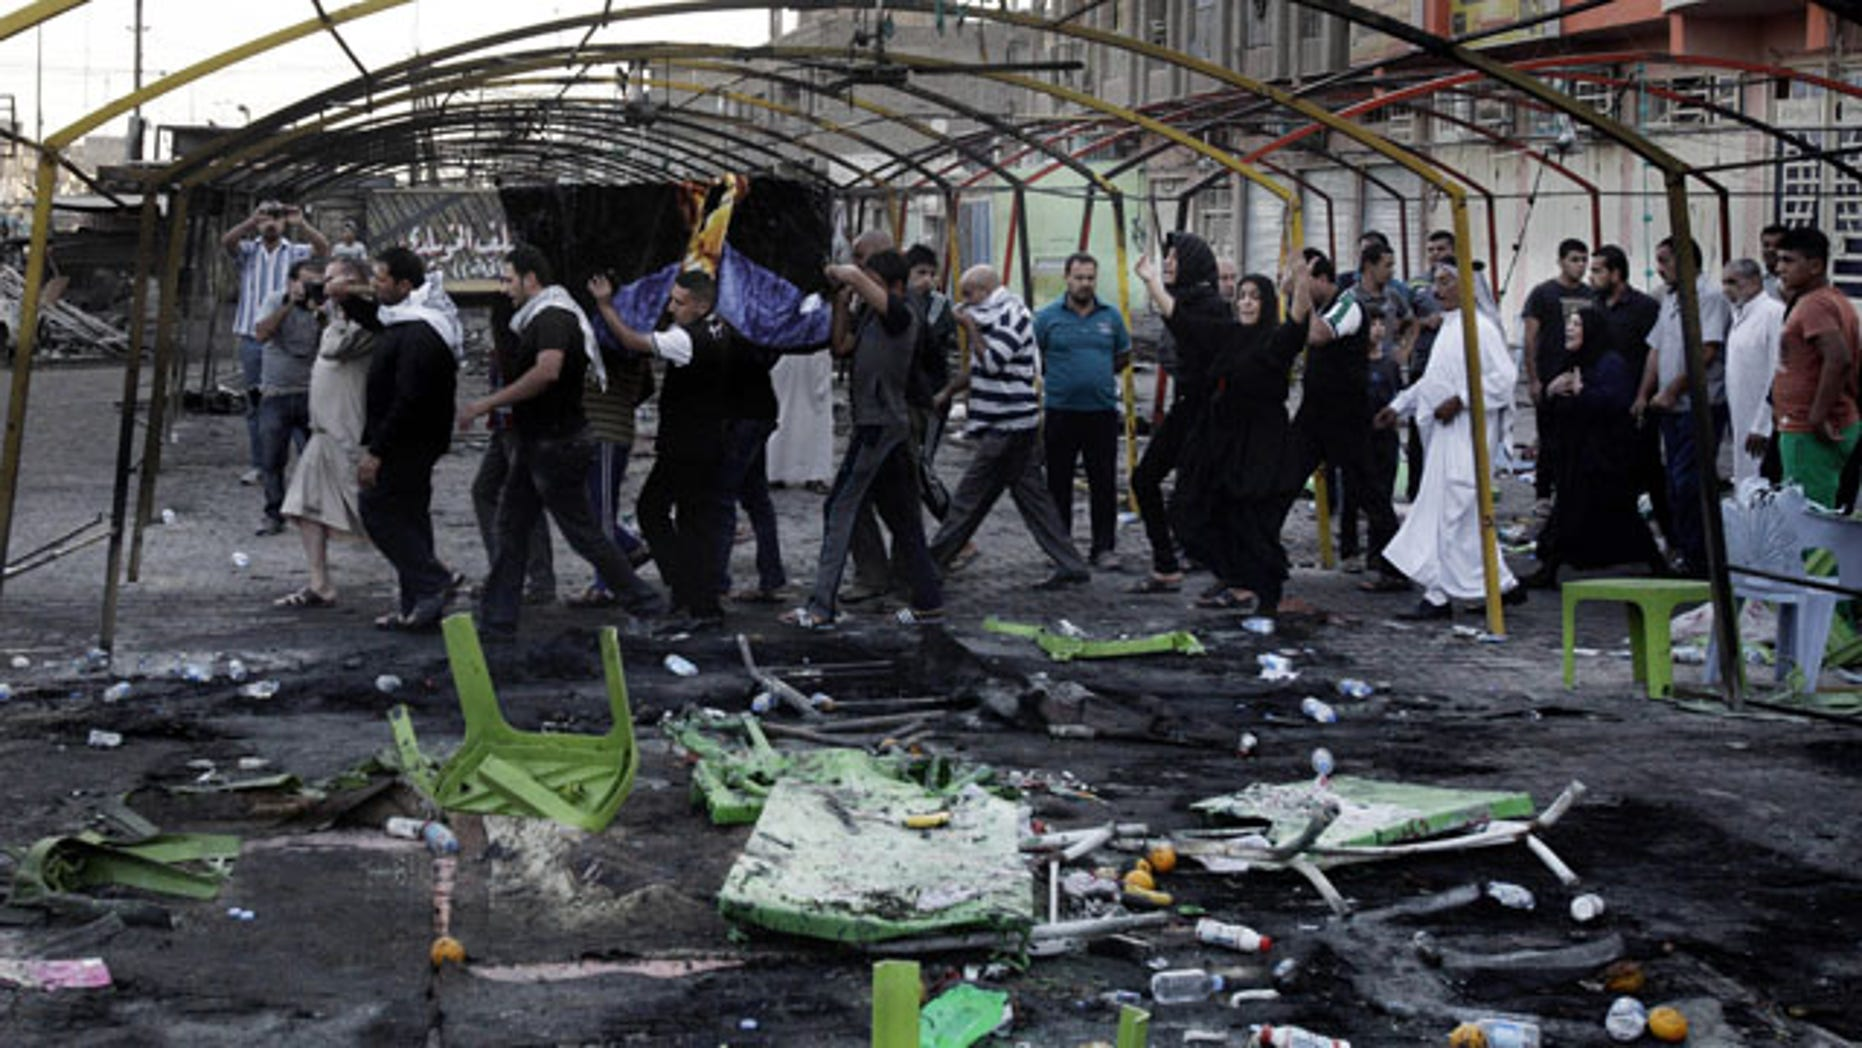 FILE - In this Sept. 22, 2013 file photo, mourners carry the coffin of a man killed on Saturday from a double suicide bomb attack in the Shiite neighborhood of Sadr city in Baghdad, Iraq. (AP Photo)